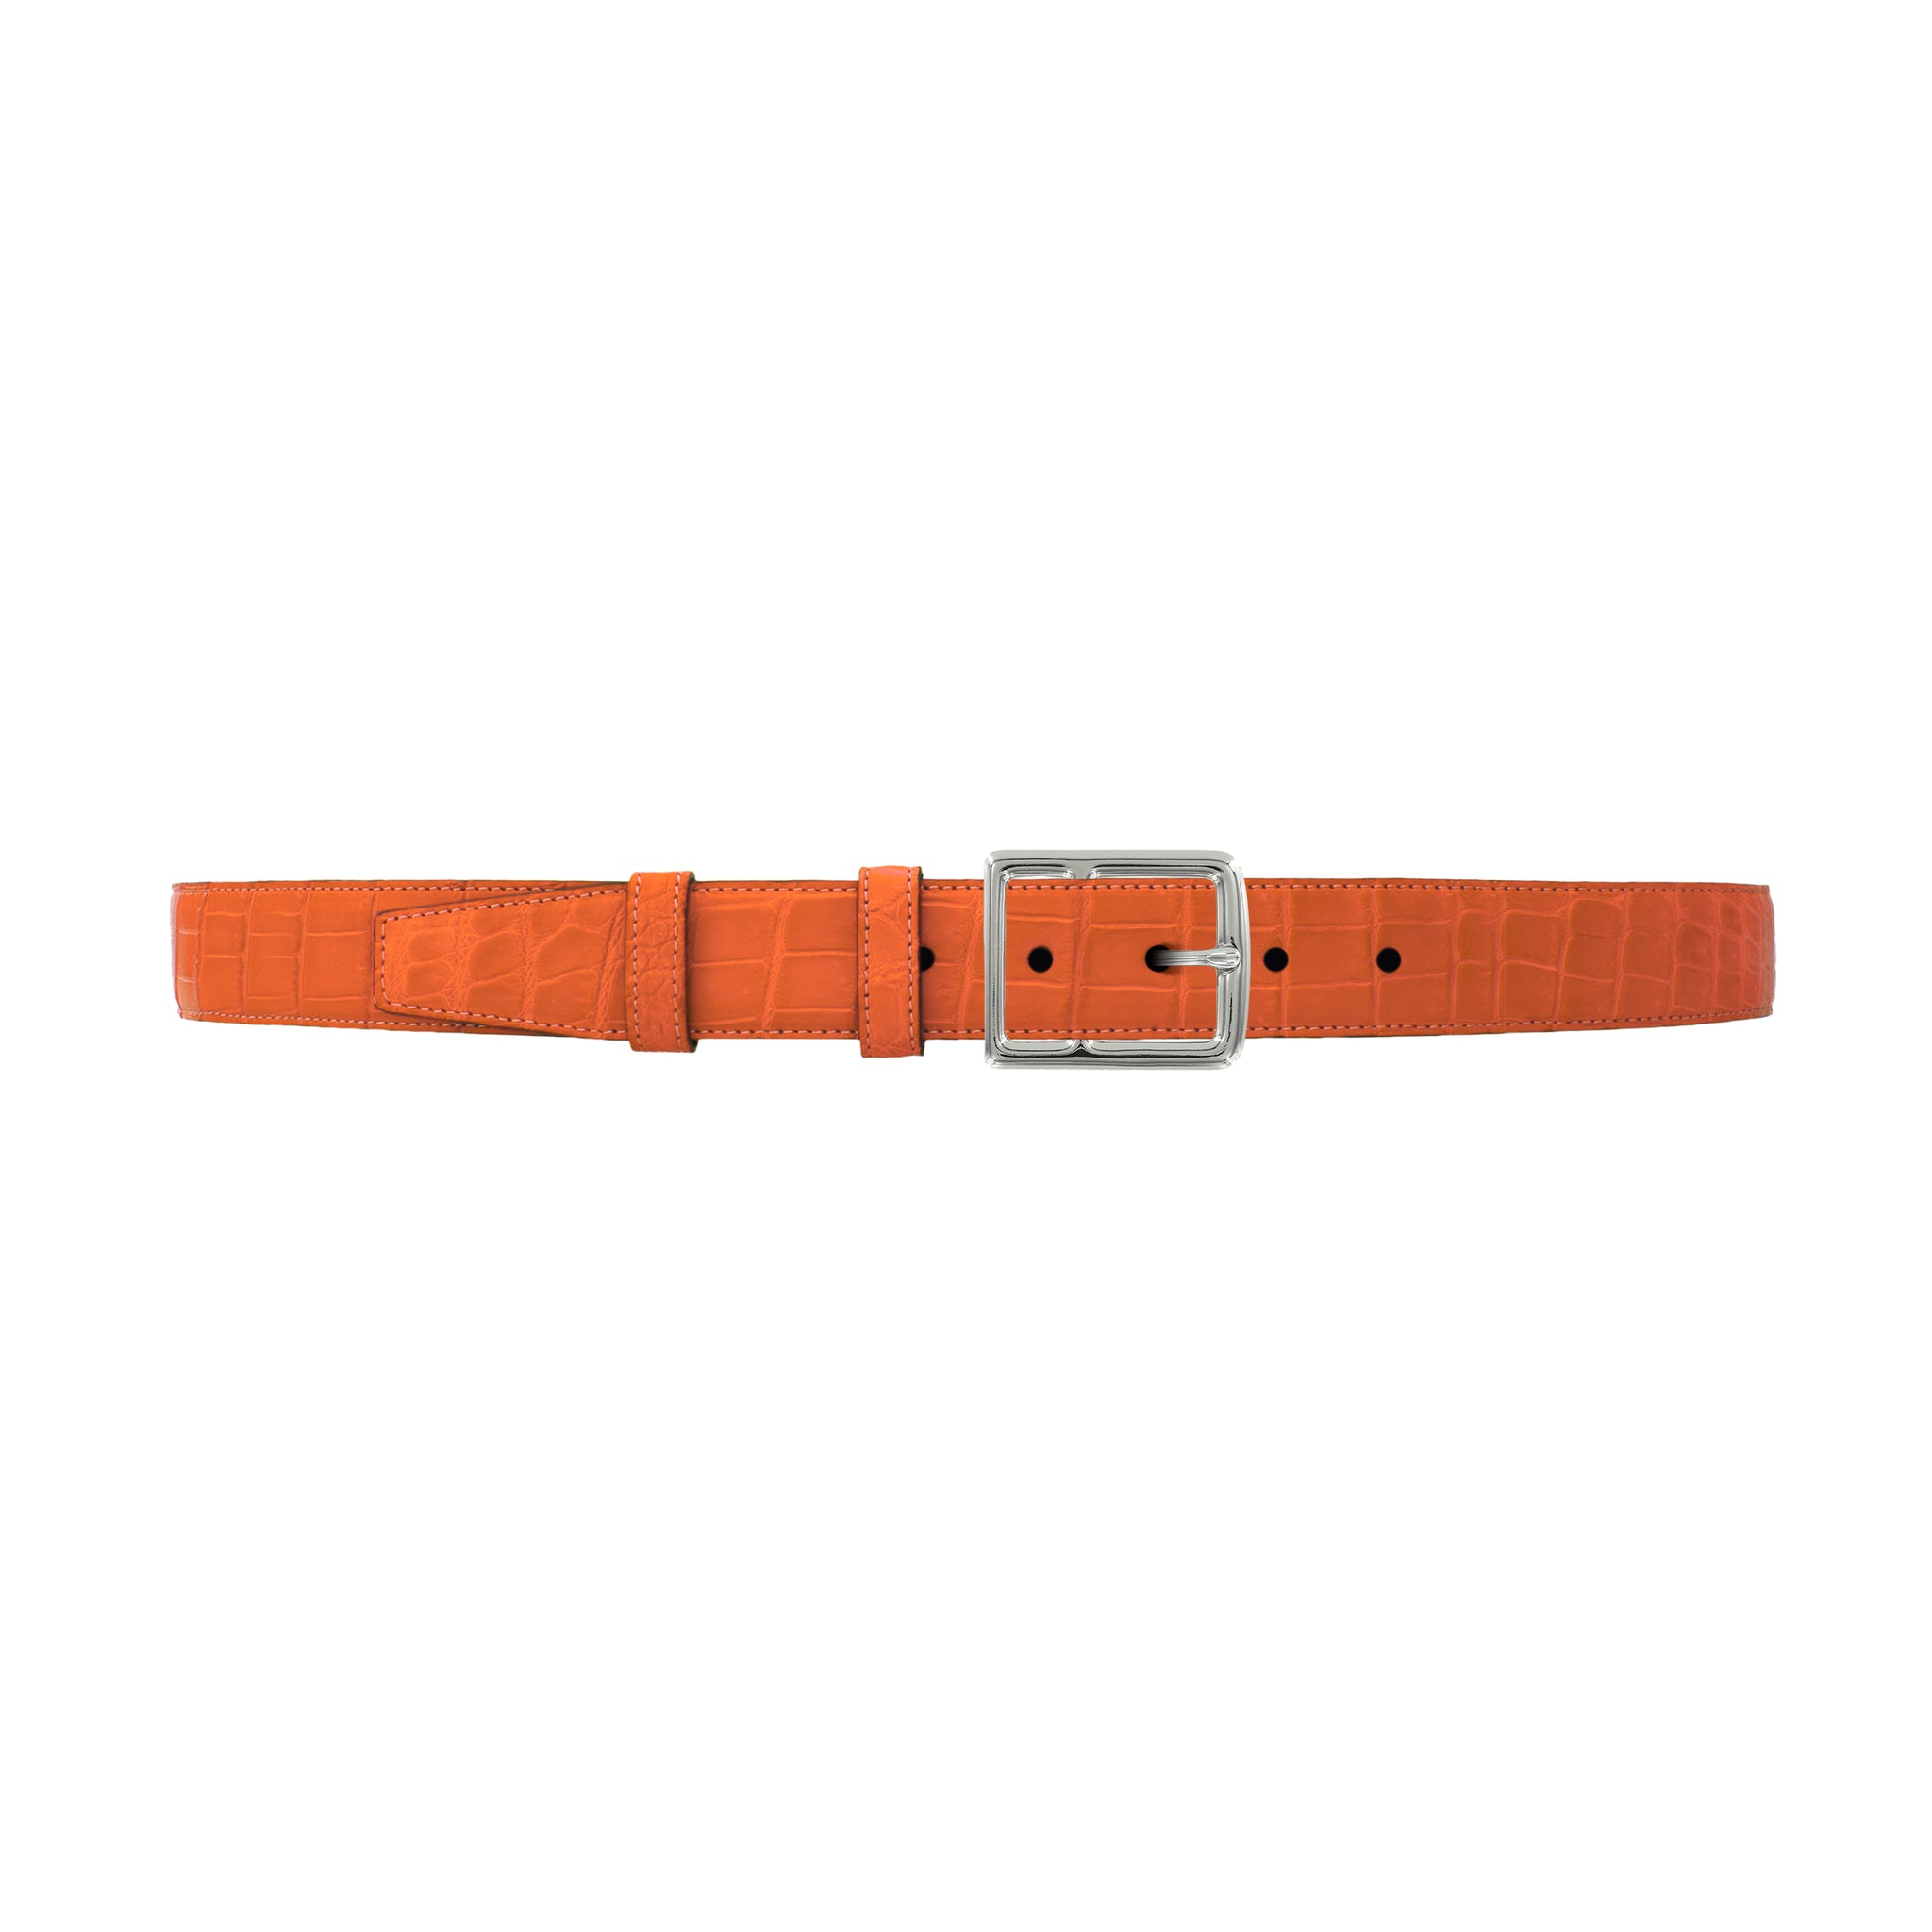 "1 1/4"" Orange Seasonal Belt with Crawford Casual Buckle in Polished Nickel"